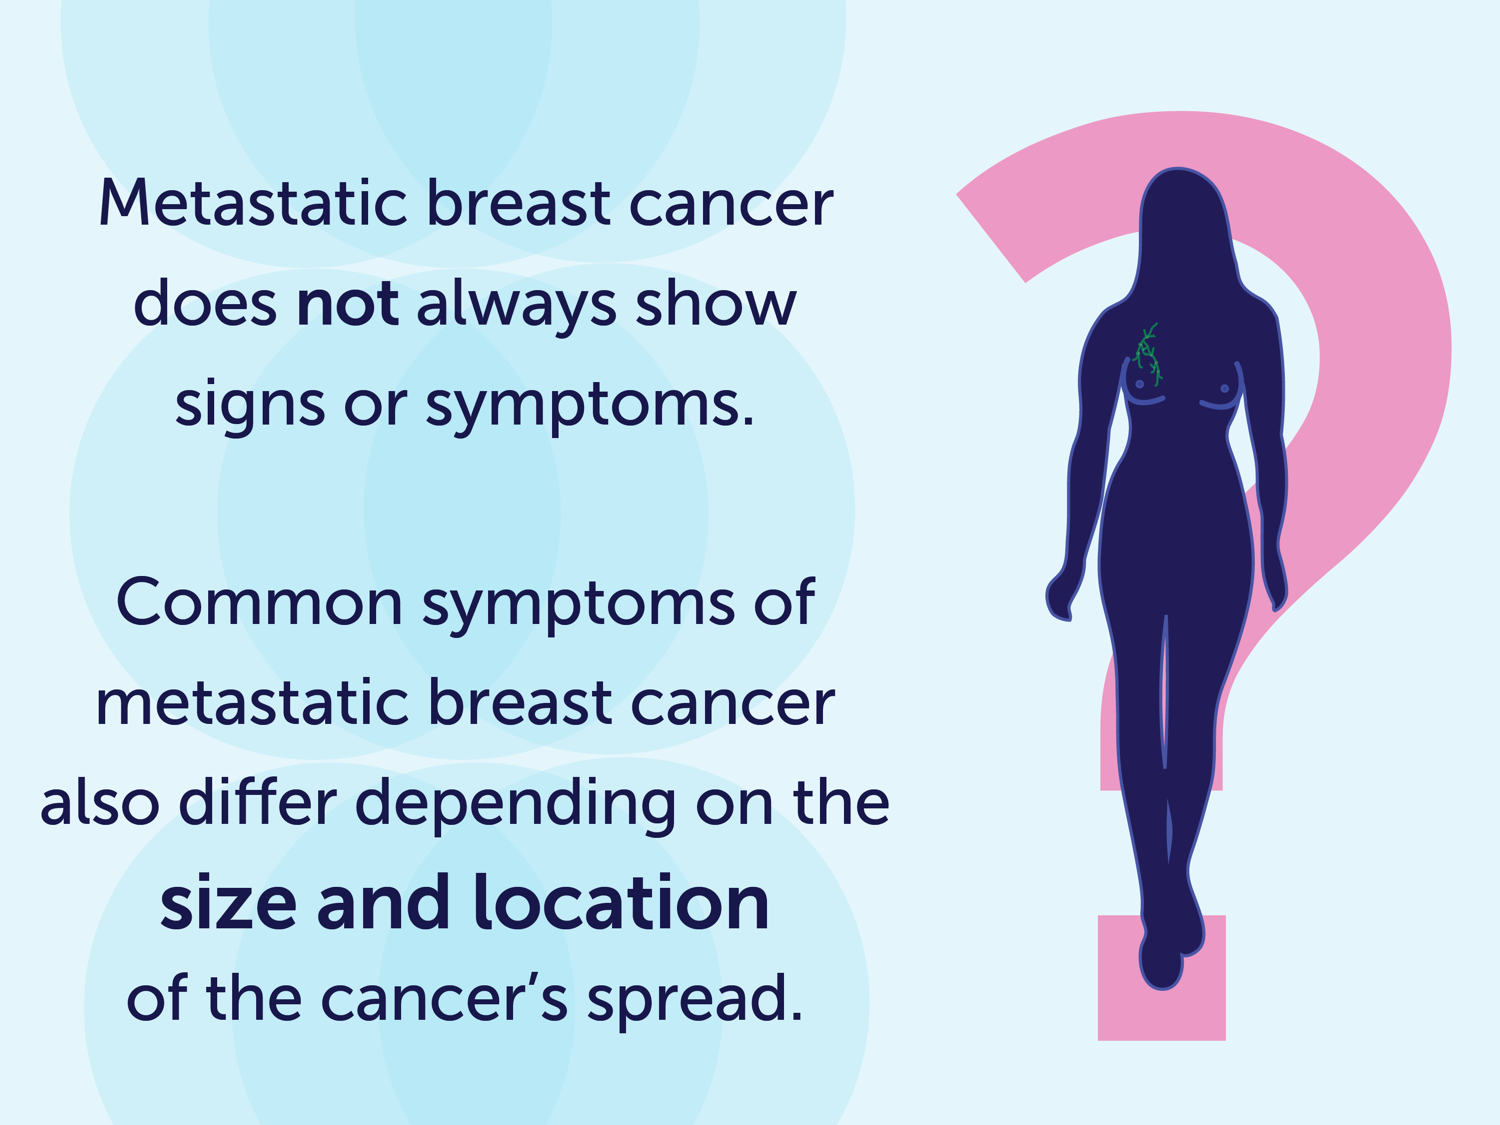 Metastatic breast cancer does not always show signs or symptoms. Common symptoms of metastatic breast cancer also differ depending on the size and location of the cancer's spread.